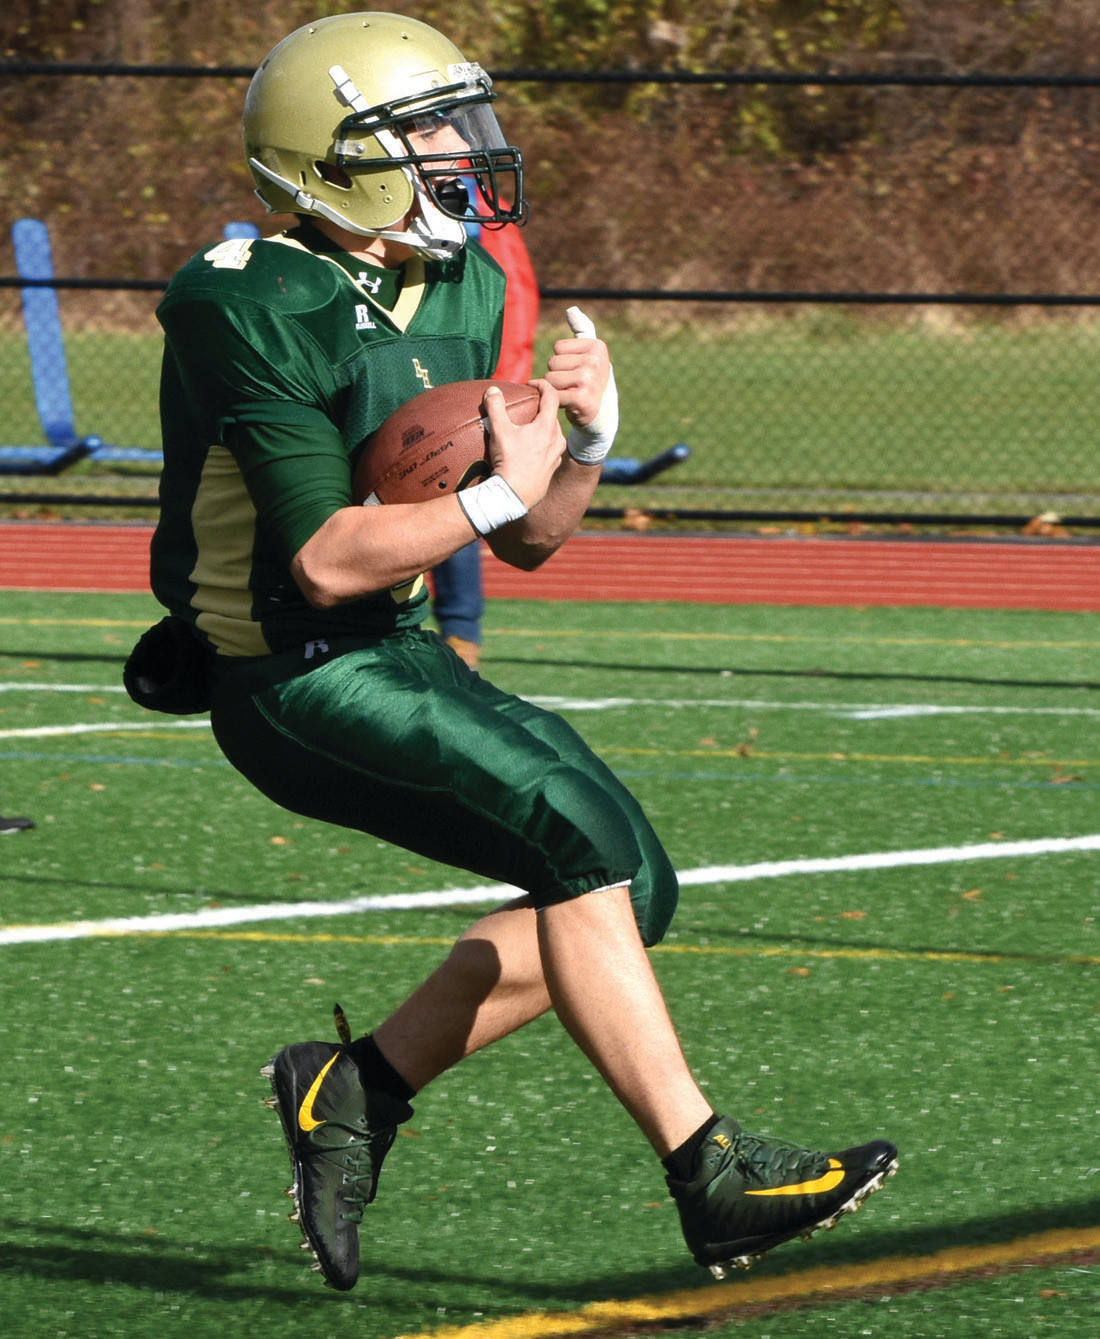 Zach Lavergne finds the end zone on a 14-yard run for the lone Hendricken touchdown in the game.